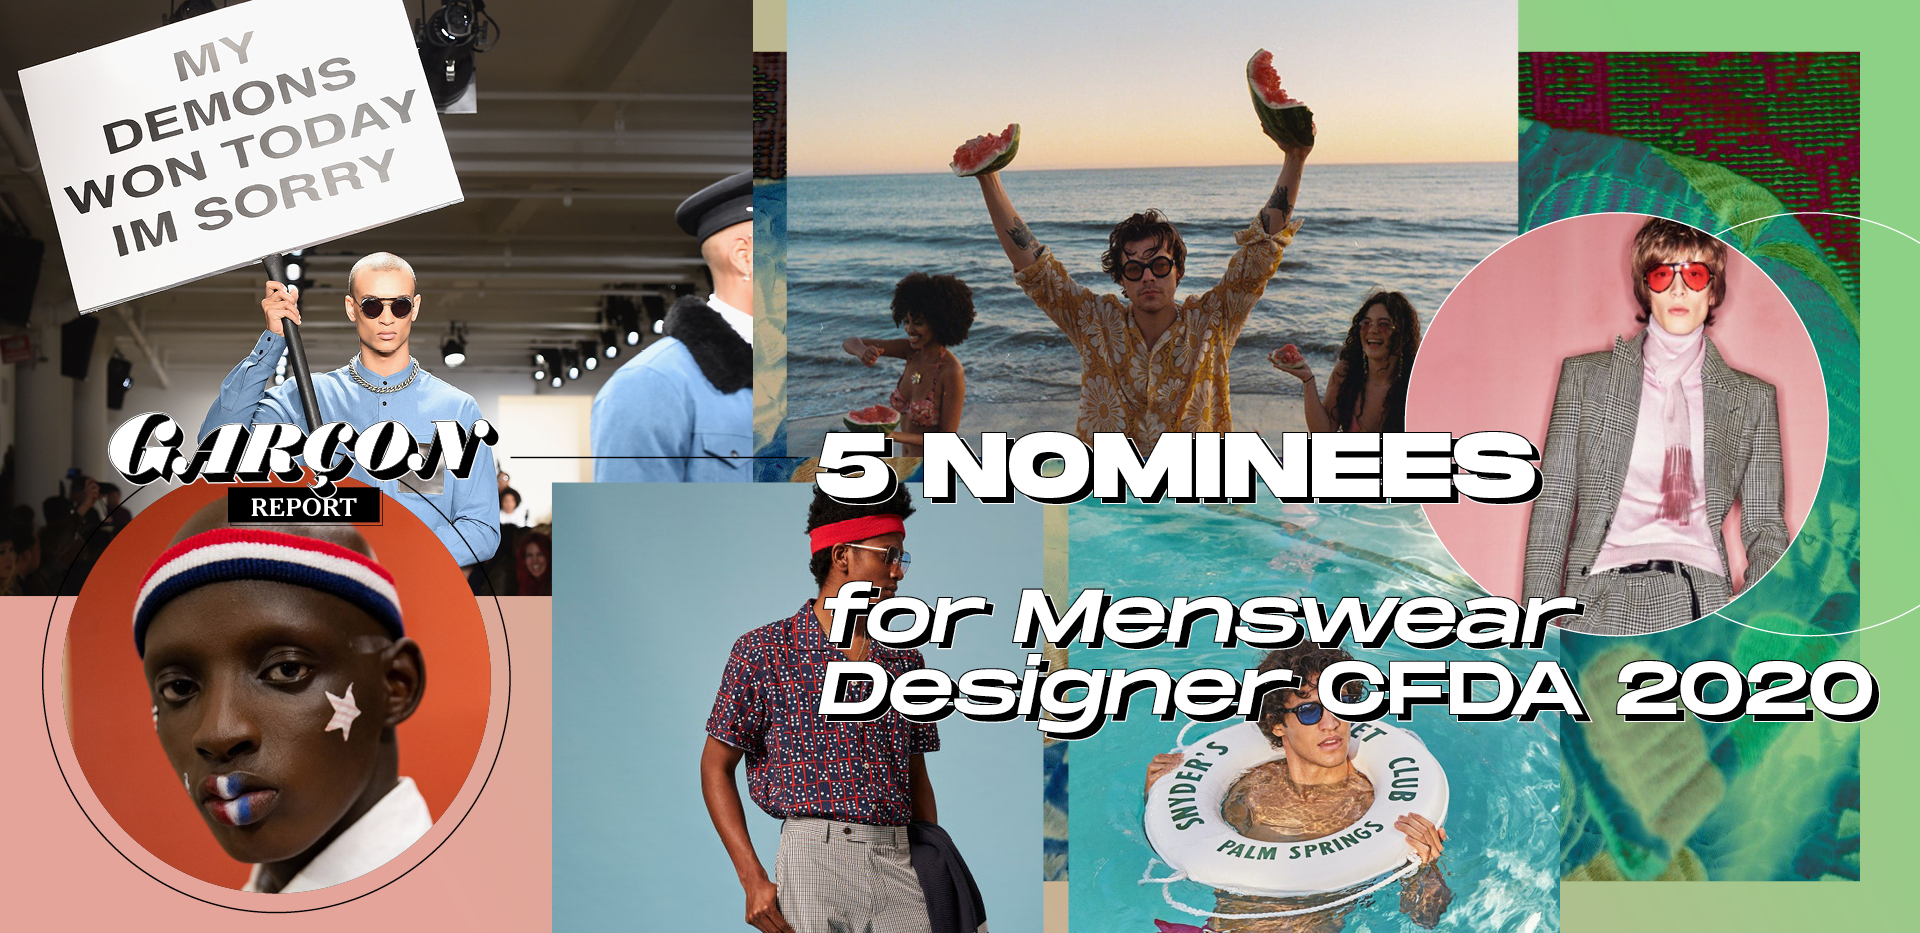 5 Nominees for Menswear Designer CFDA 2020